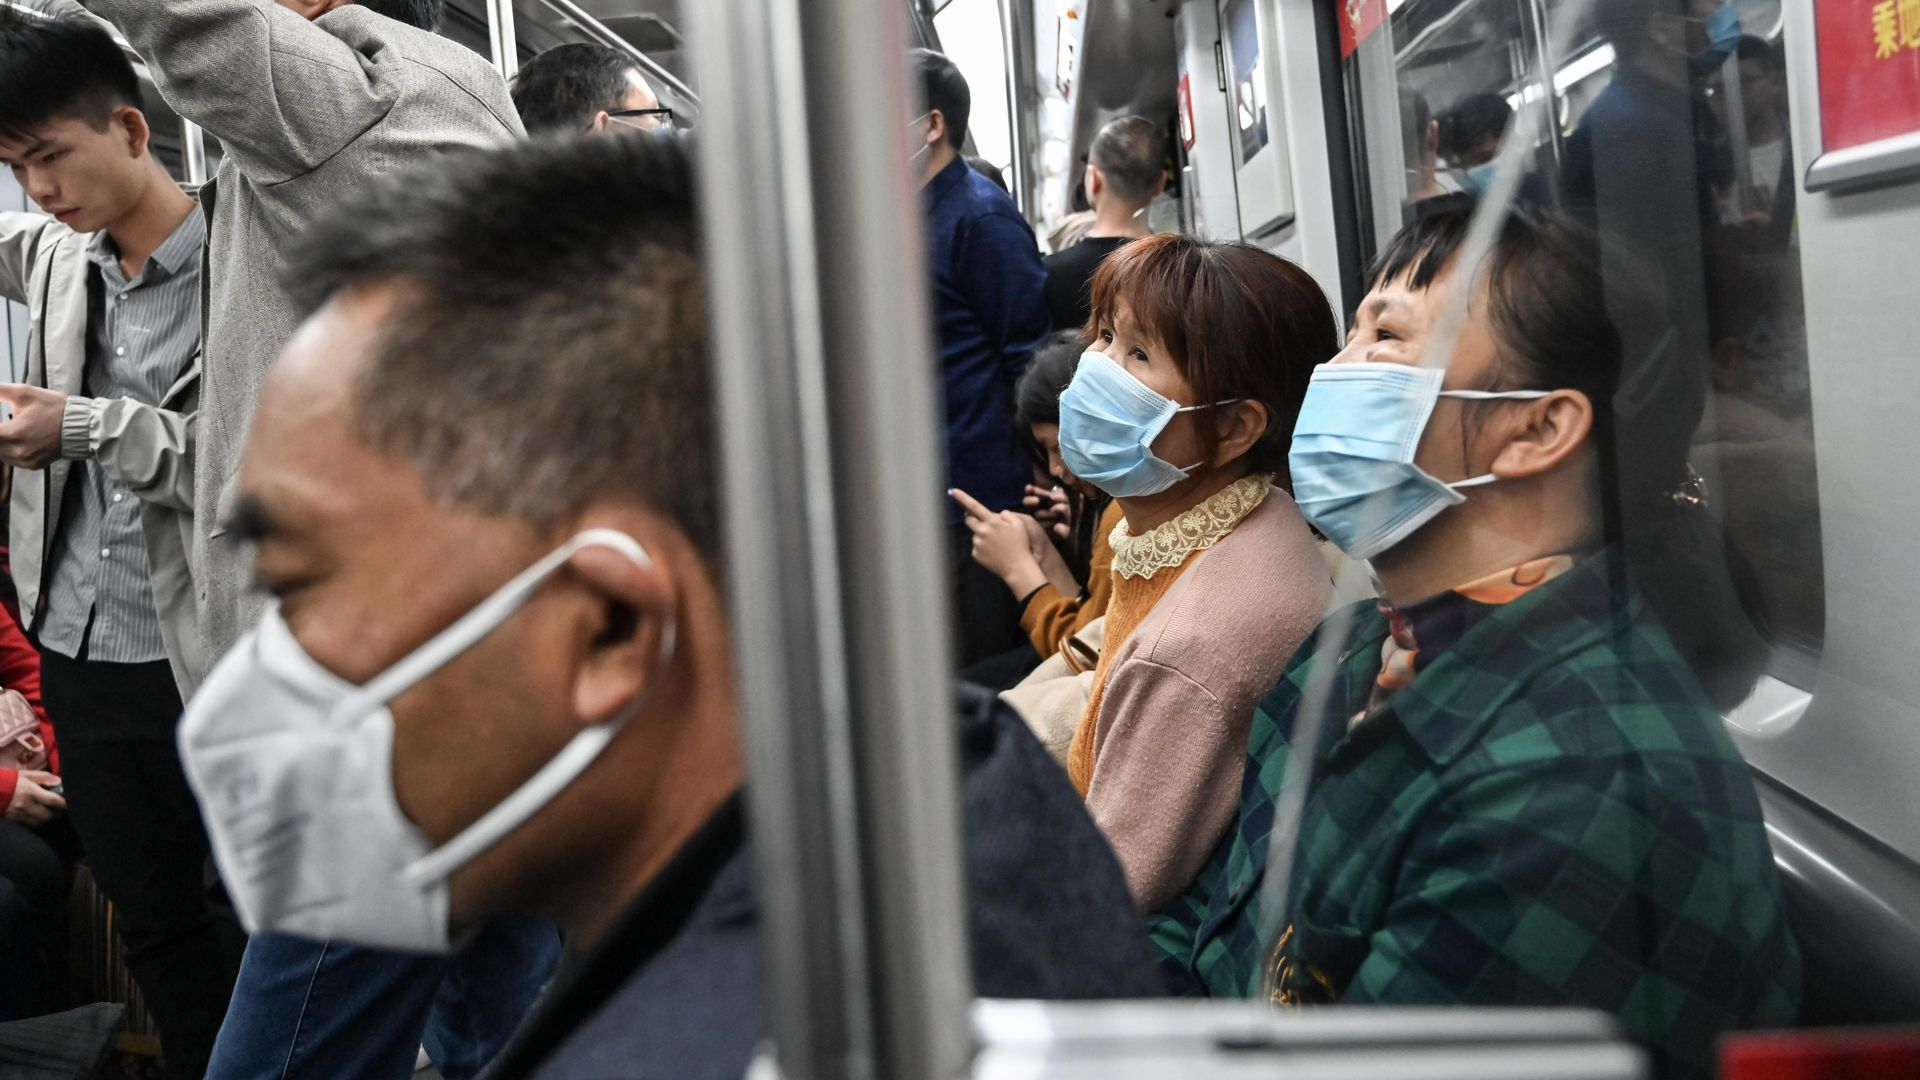 Beijing and other Chinese cities cancel Lunar New Year events amid Wuhan coronavirus outbreak